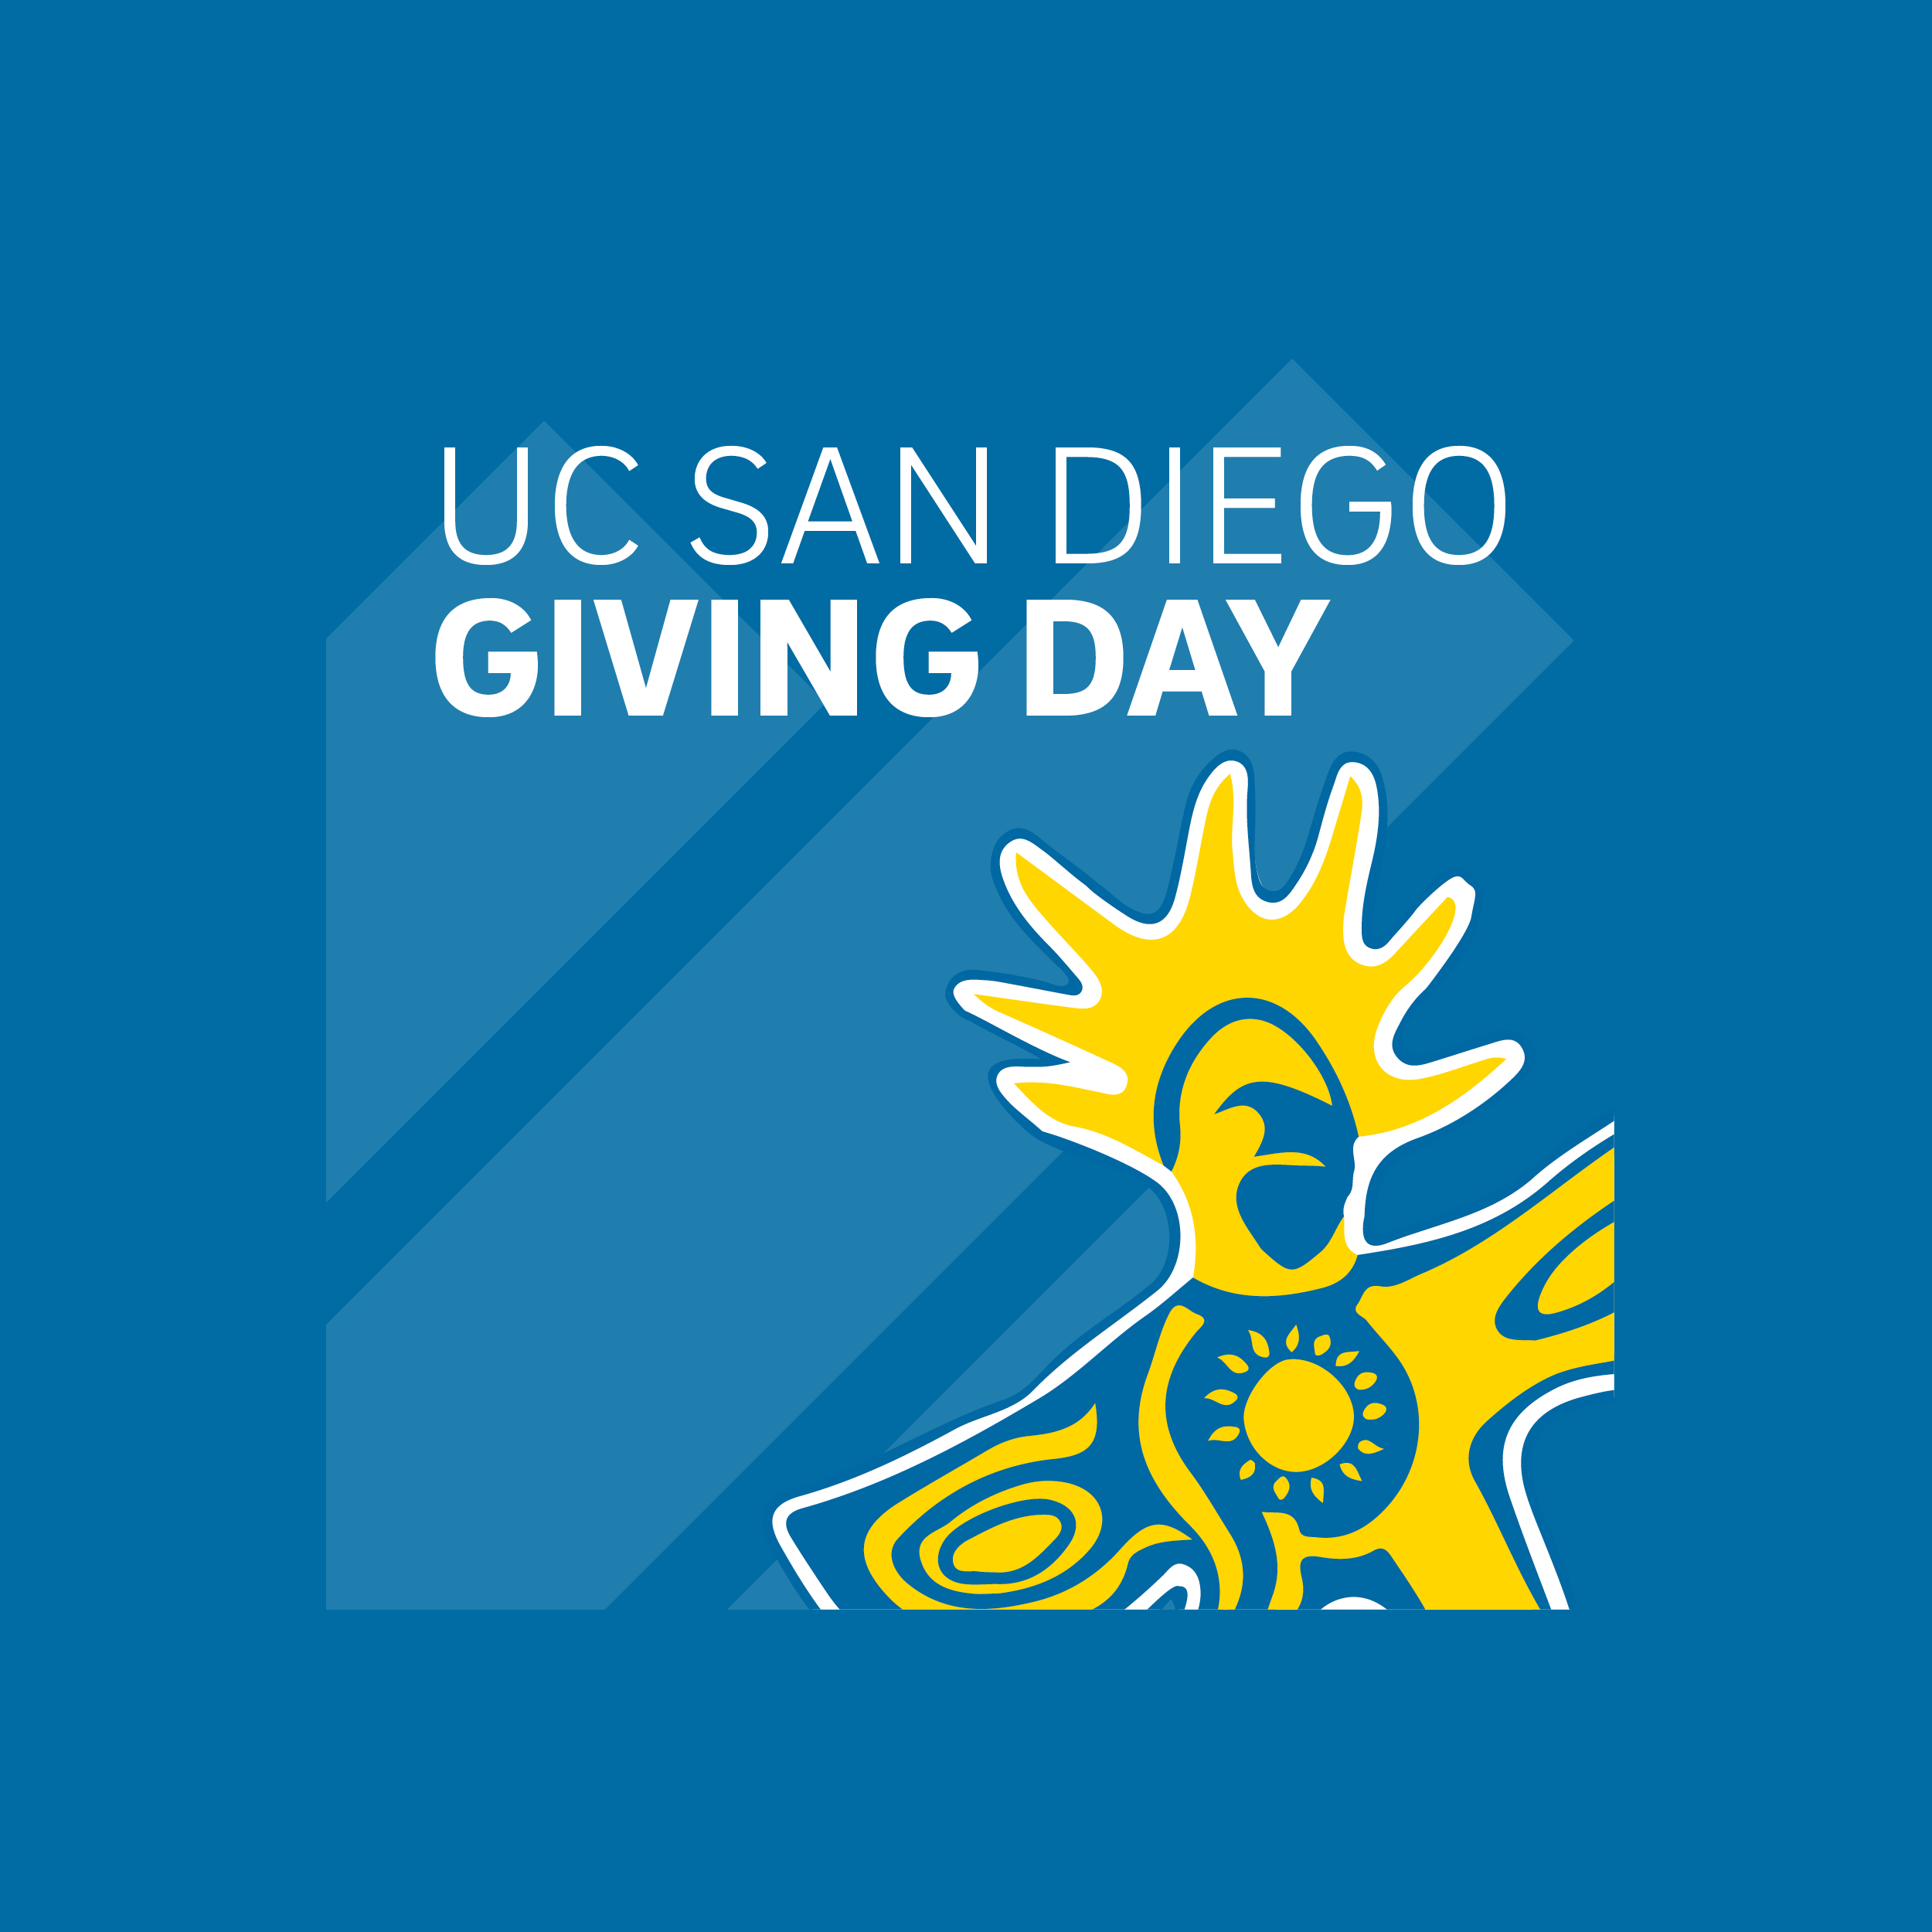 UCSD Giving Day